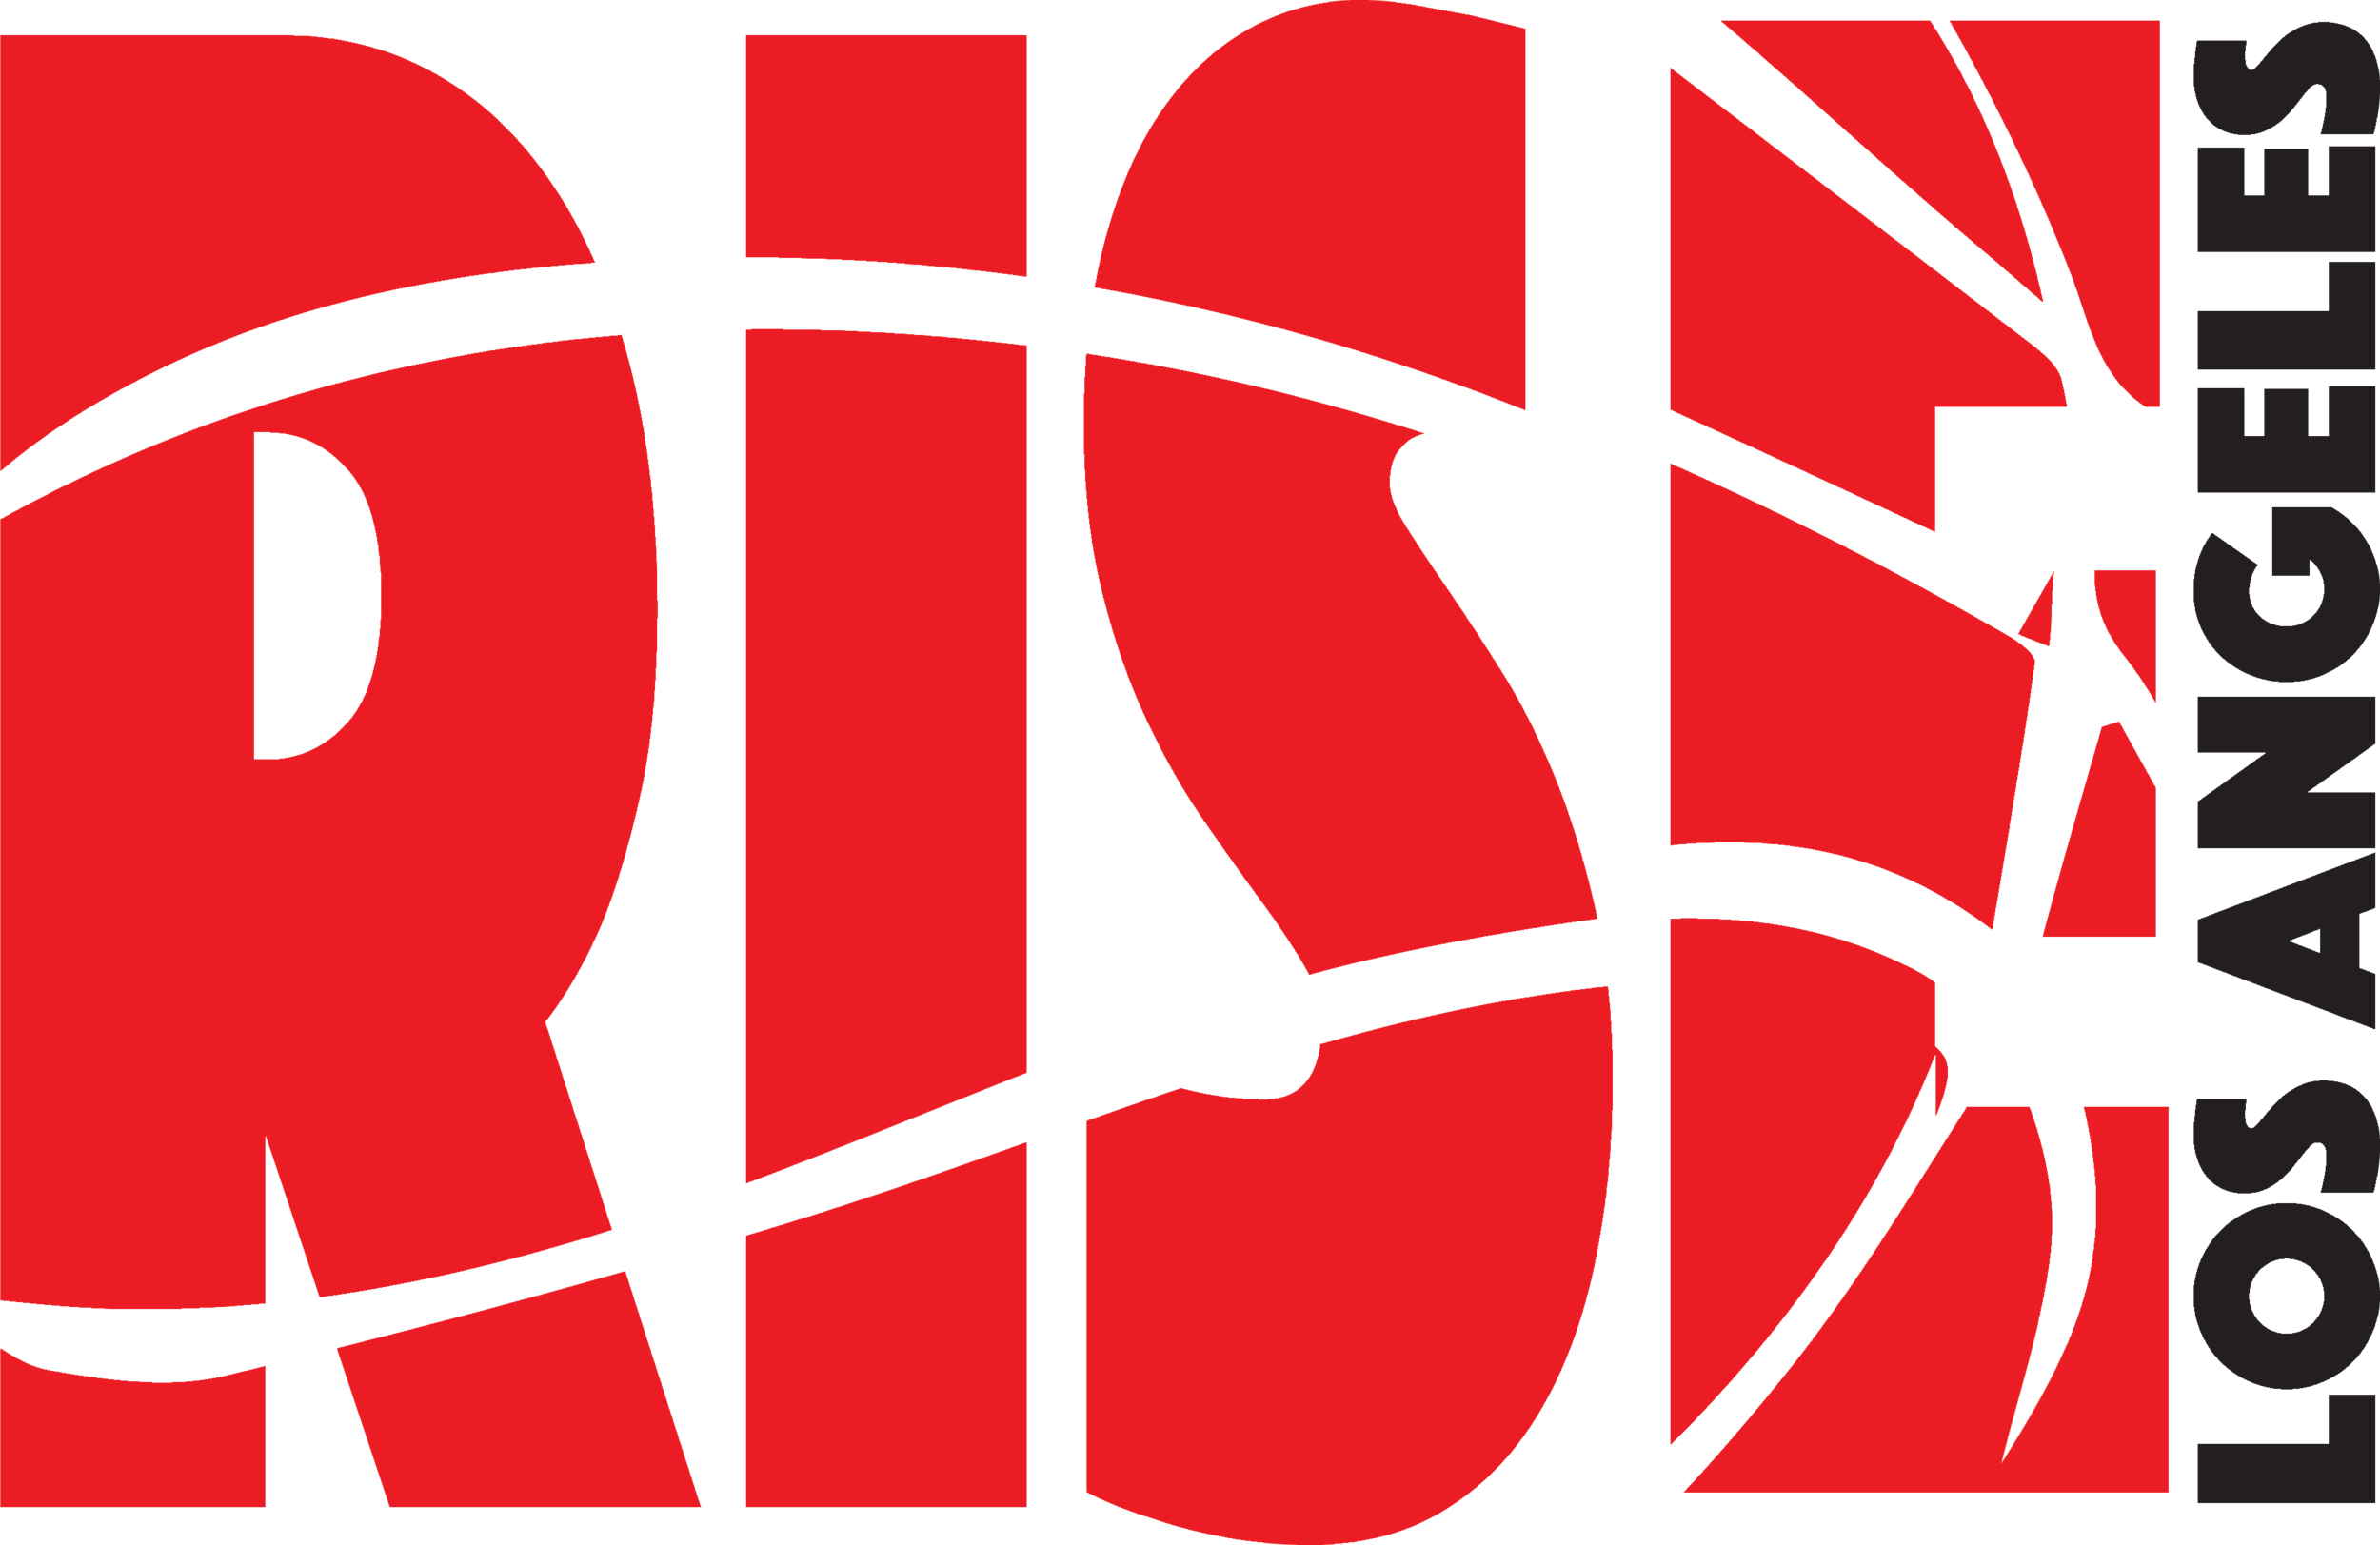 RISE PNG.png